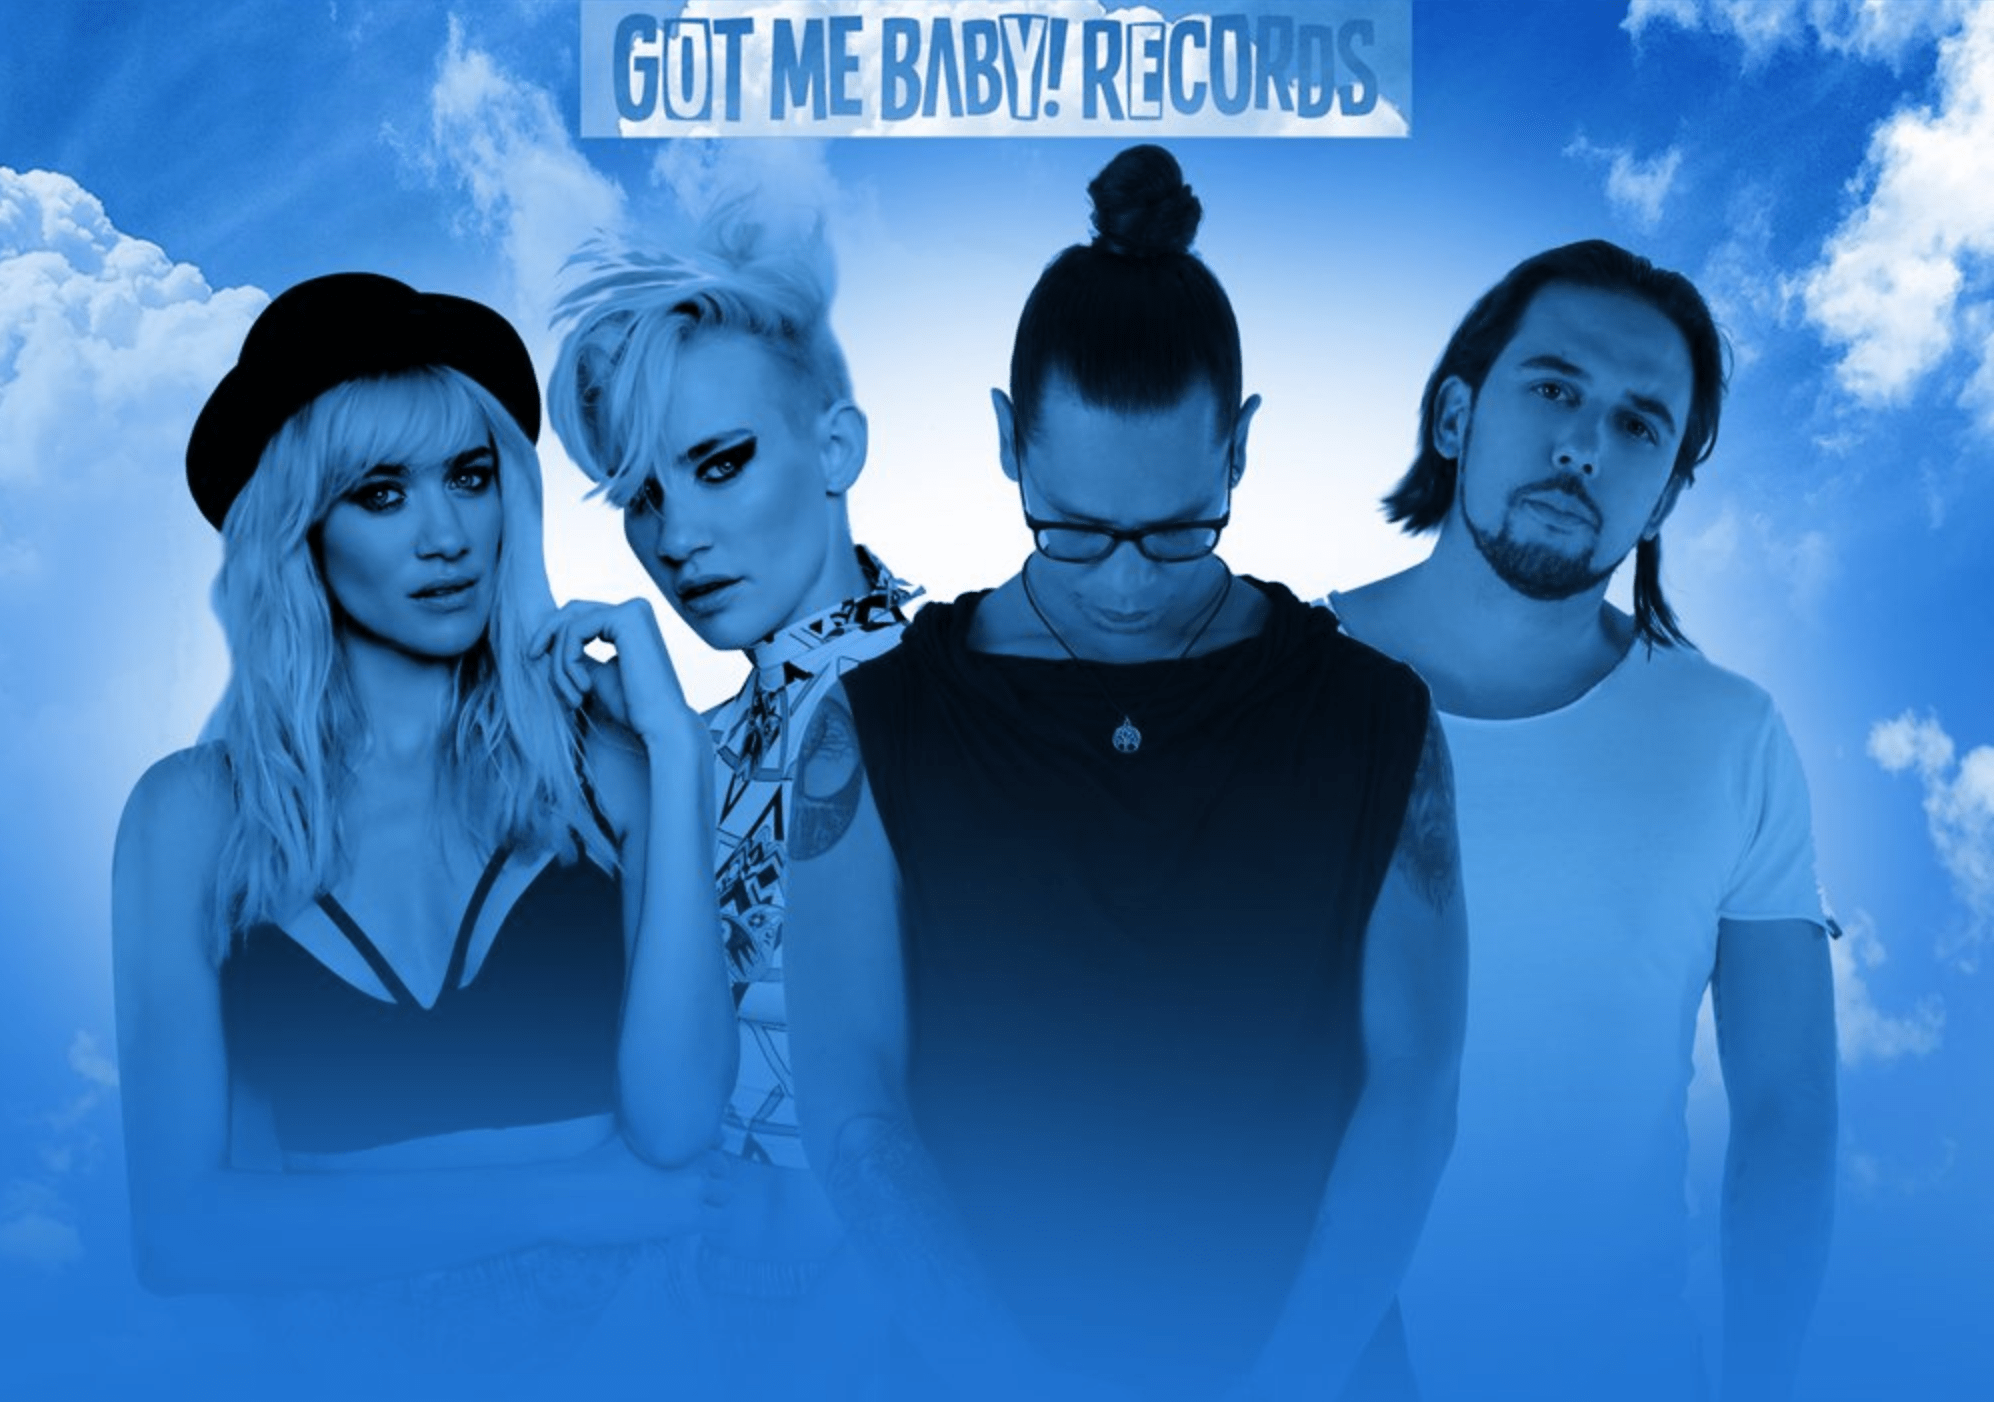 NERVO link up with Wolfpack for first single on Got Me Baby! Records, titled 'Like Air'